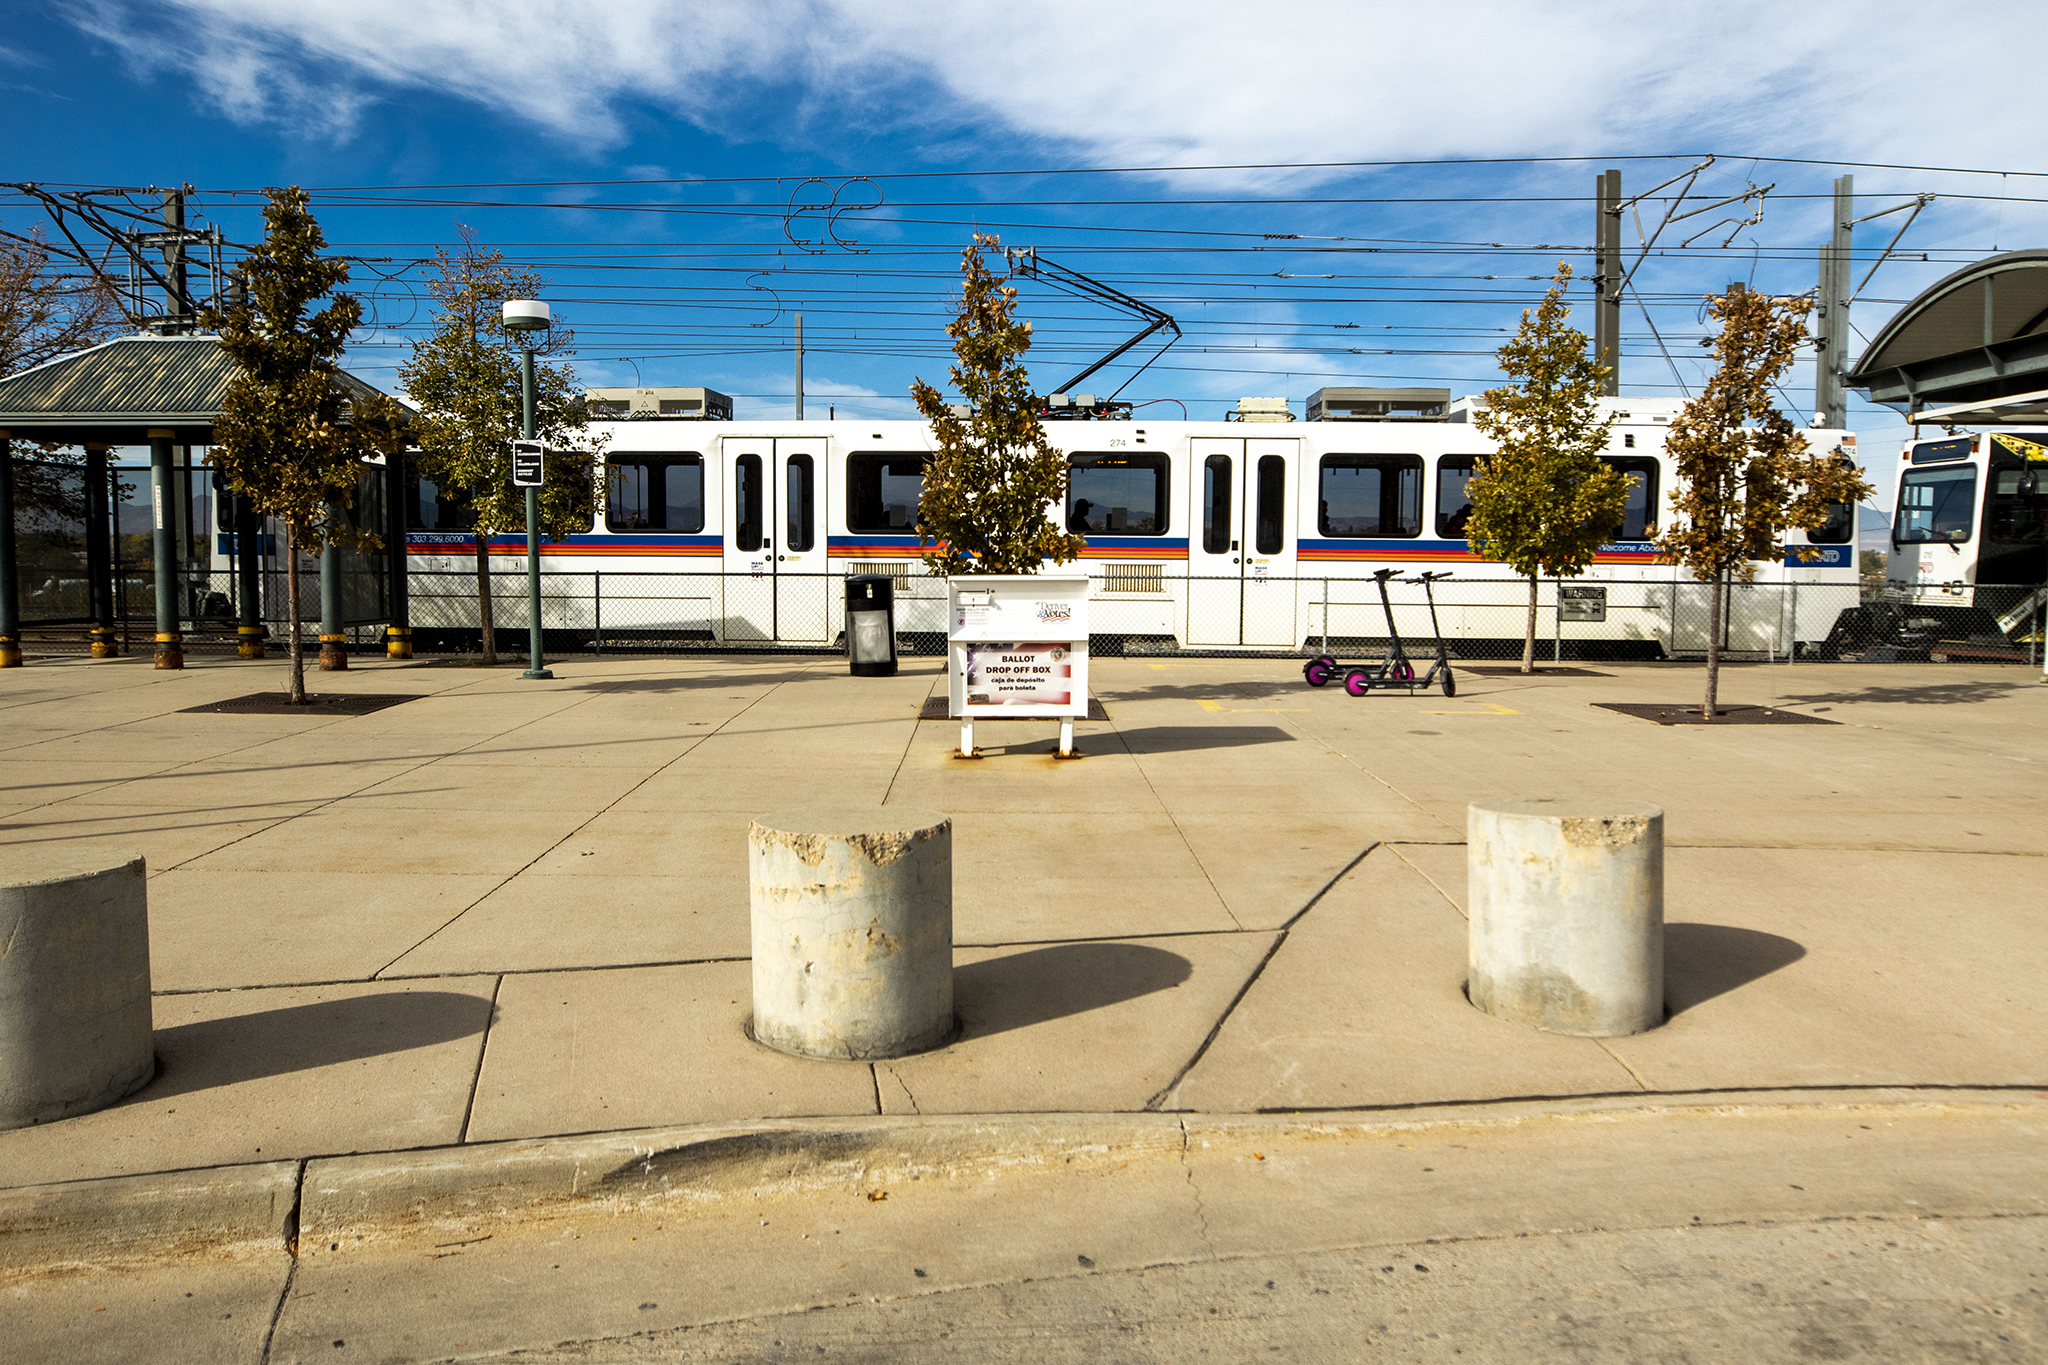 A lonely ballot dropbox at RTD's station at Broadway and I-25. Oct. 16, 2020.